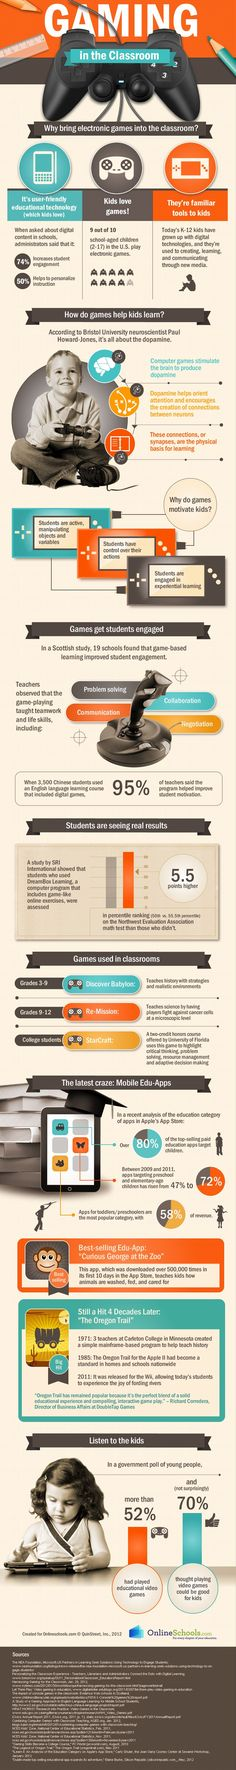 Full disclosure: we're big fans of video games and have been known to indulge ourselves. This is an interesting infographic about #Gaming and learning.